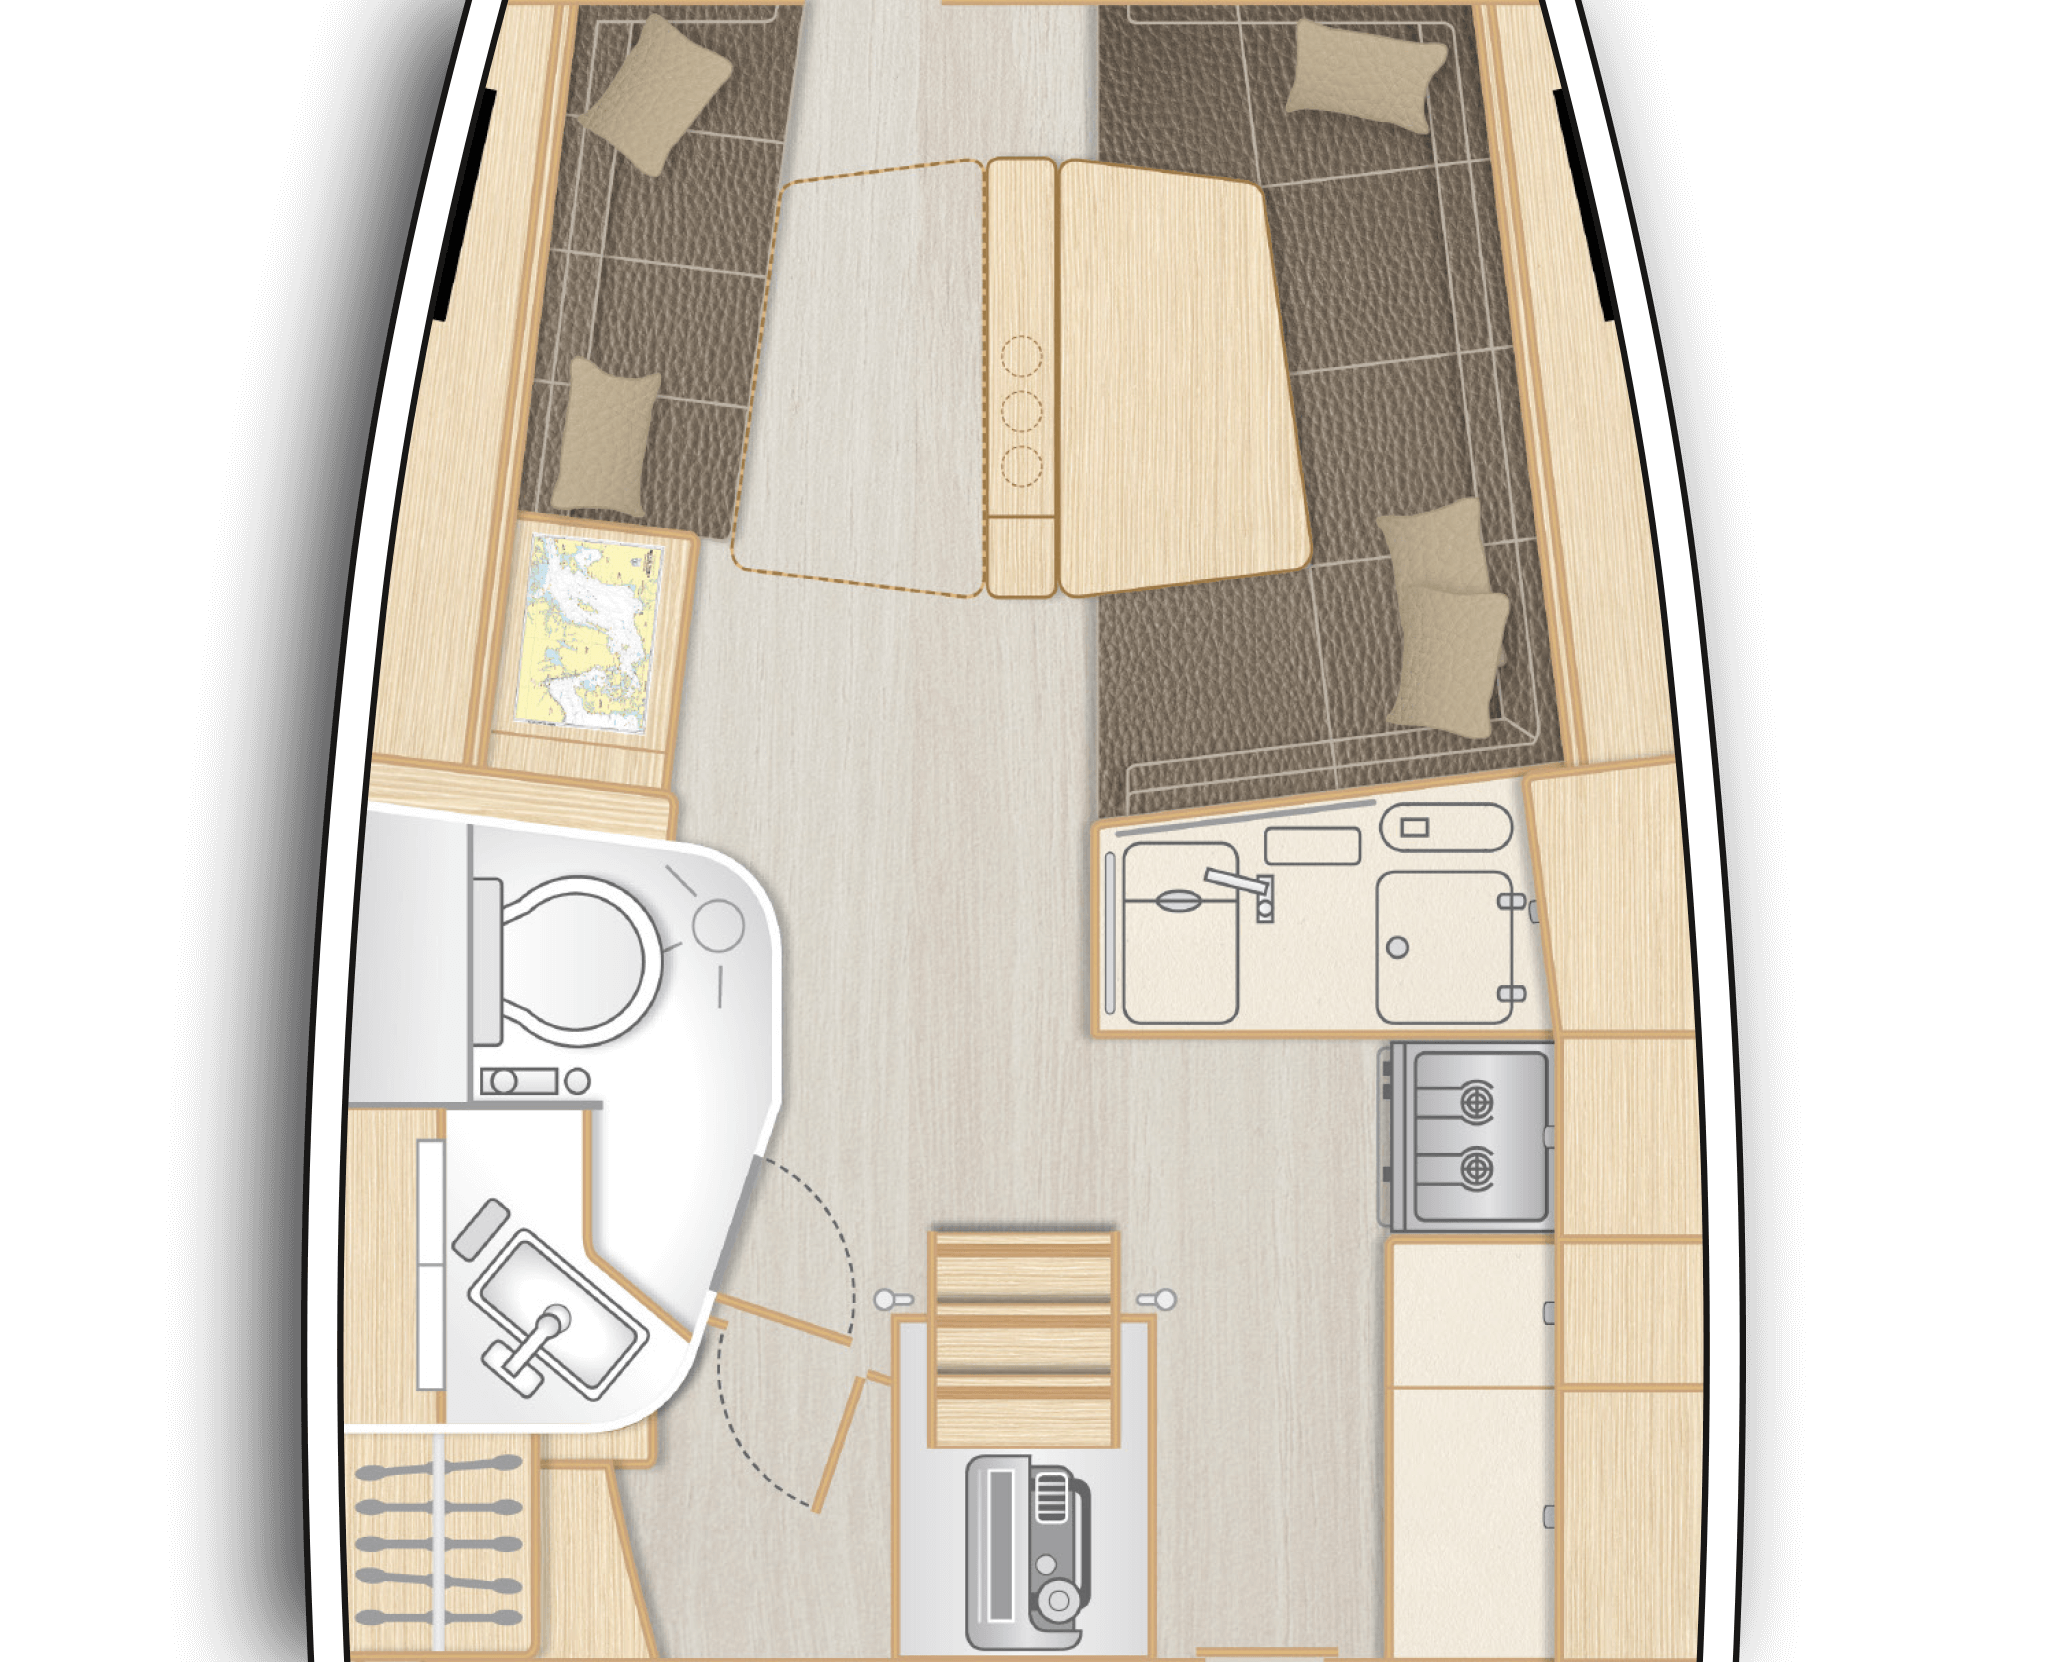 B1: Saloon with large L-galley, dining area on stb and sofa on port - separate head with shower stall on port (only with layout C1)